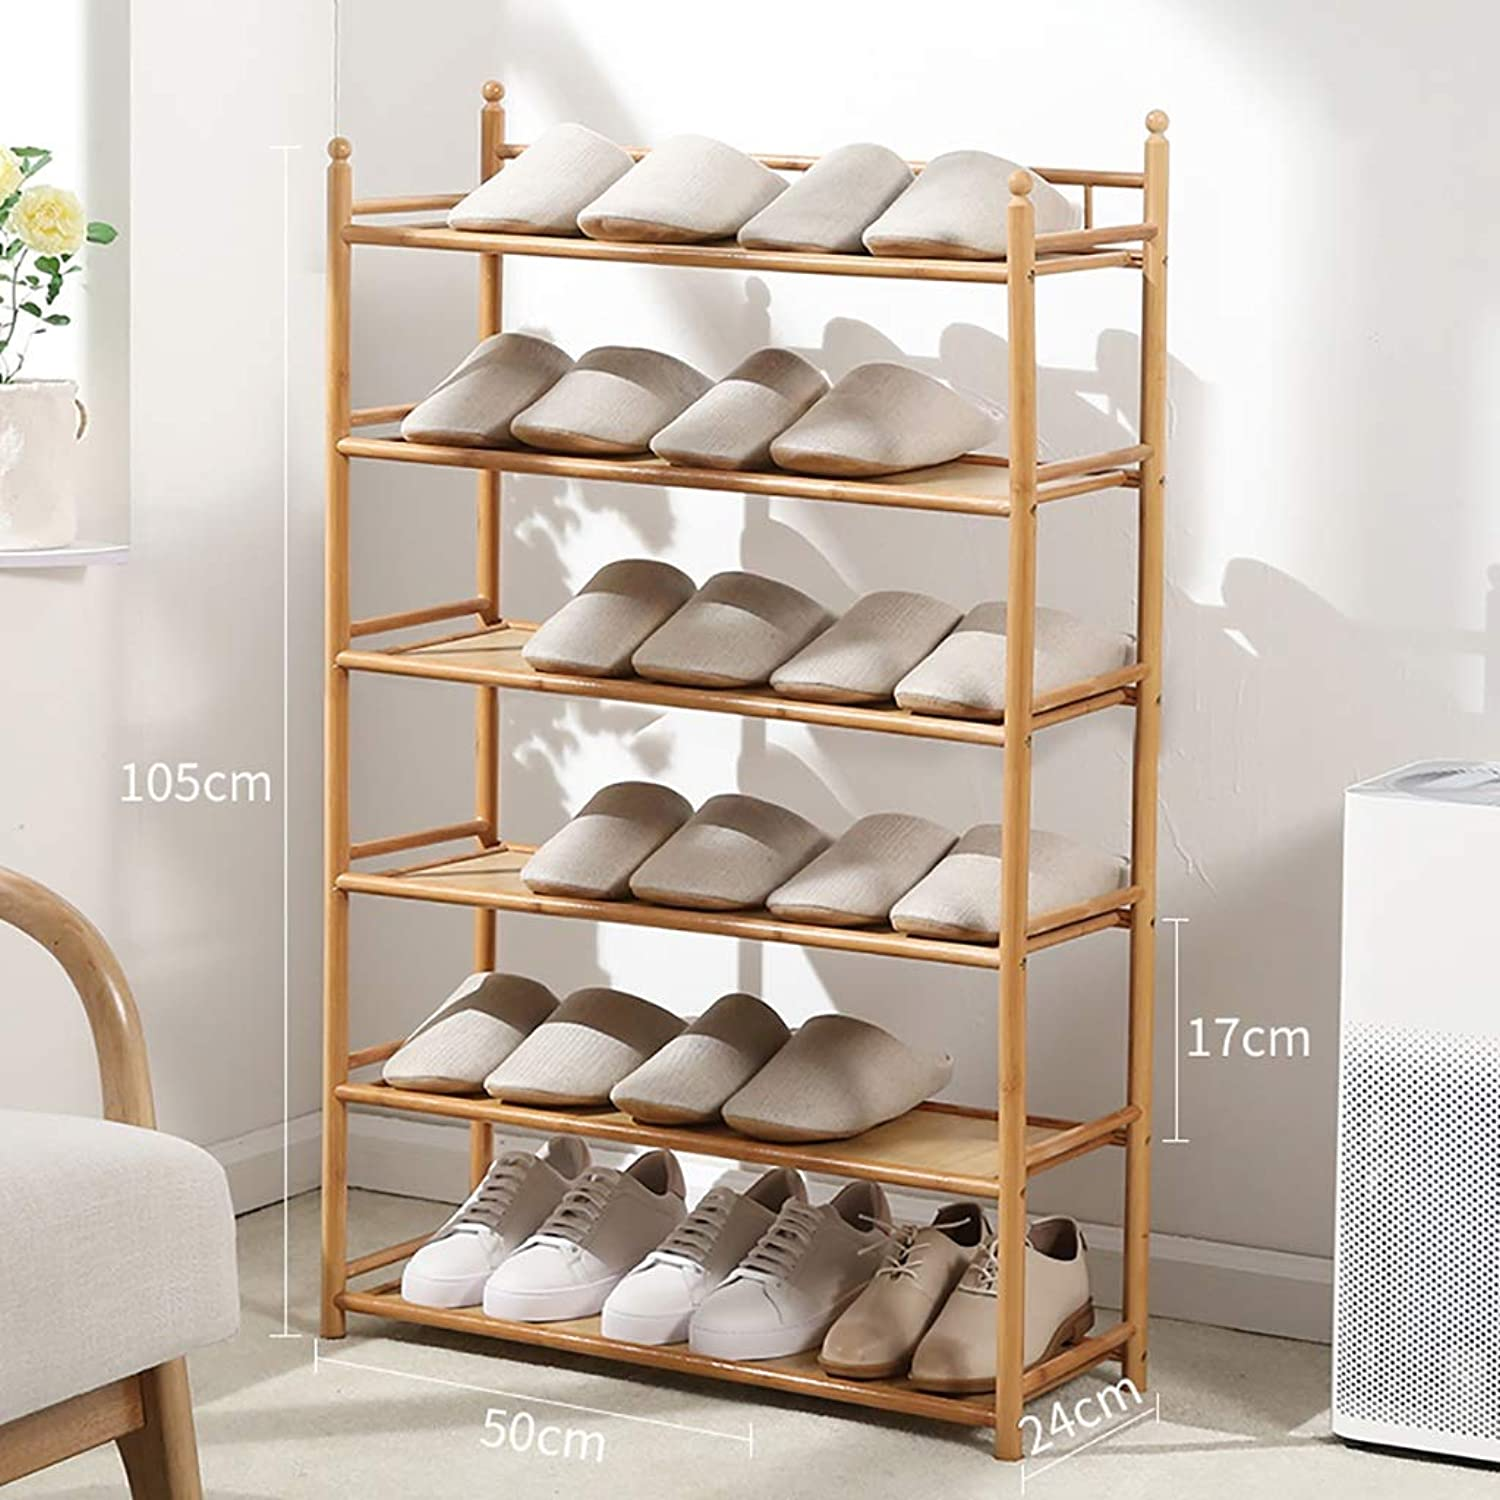 3 4 5 6-layer shoes Rack Shelf Flower Stand Bookshelf Storage Shelf shoes Cabinet Multifunction Household Doorway Entrance Space Saving (Size   50  24  105CM)